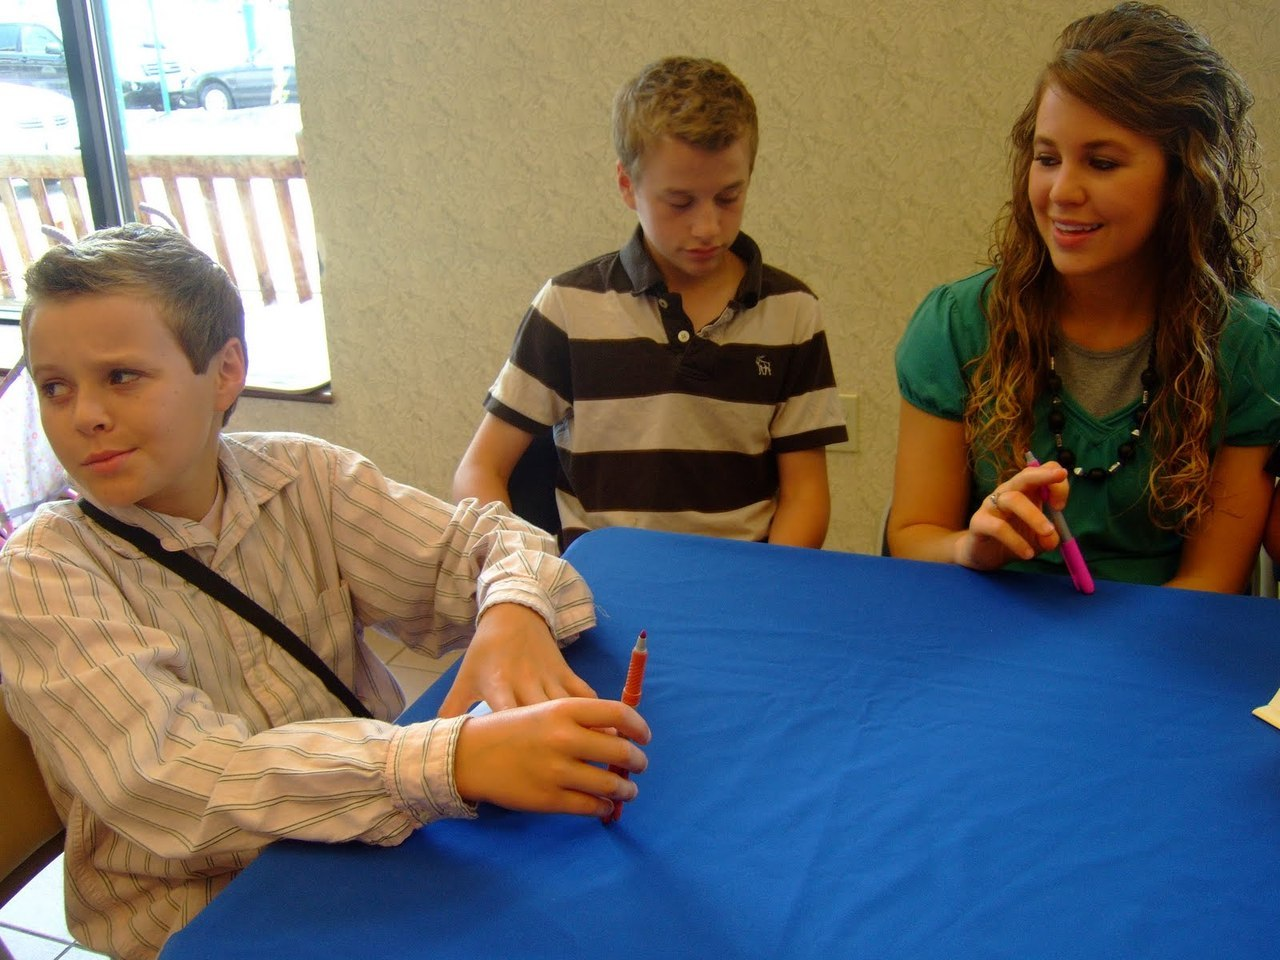 Latest News On Jana Duggar Happy Memorial Day 2014